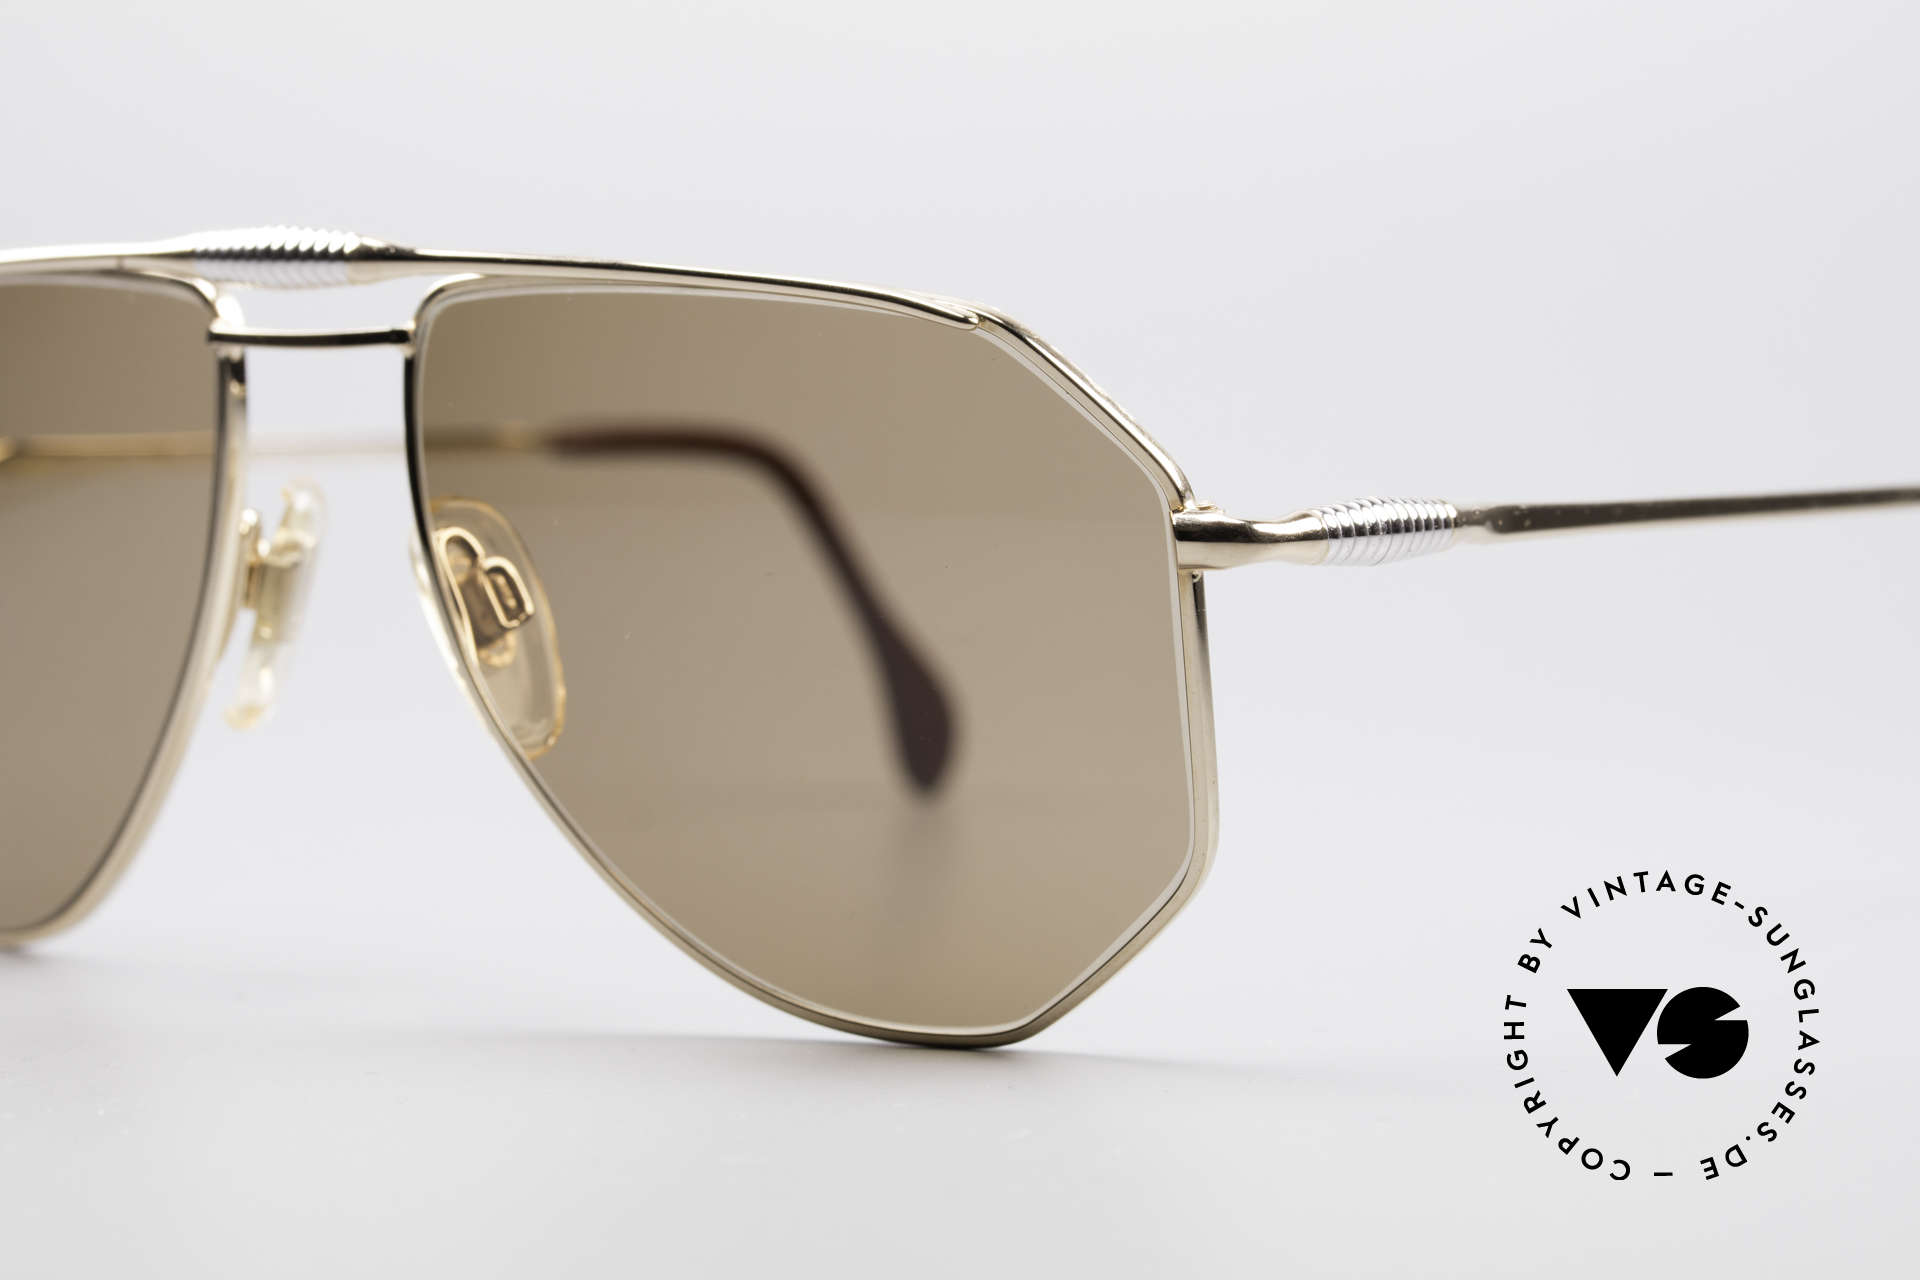 Zollitsch Cadre 120 Medium 80's Men's Sunglasses, unworn (like all our rare vintage ZOLLITSCH sunglasses), Made for Men